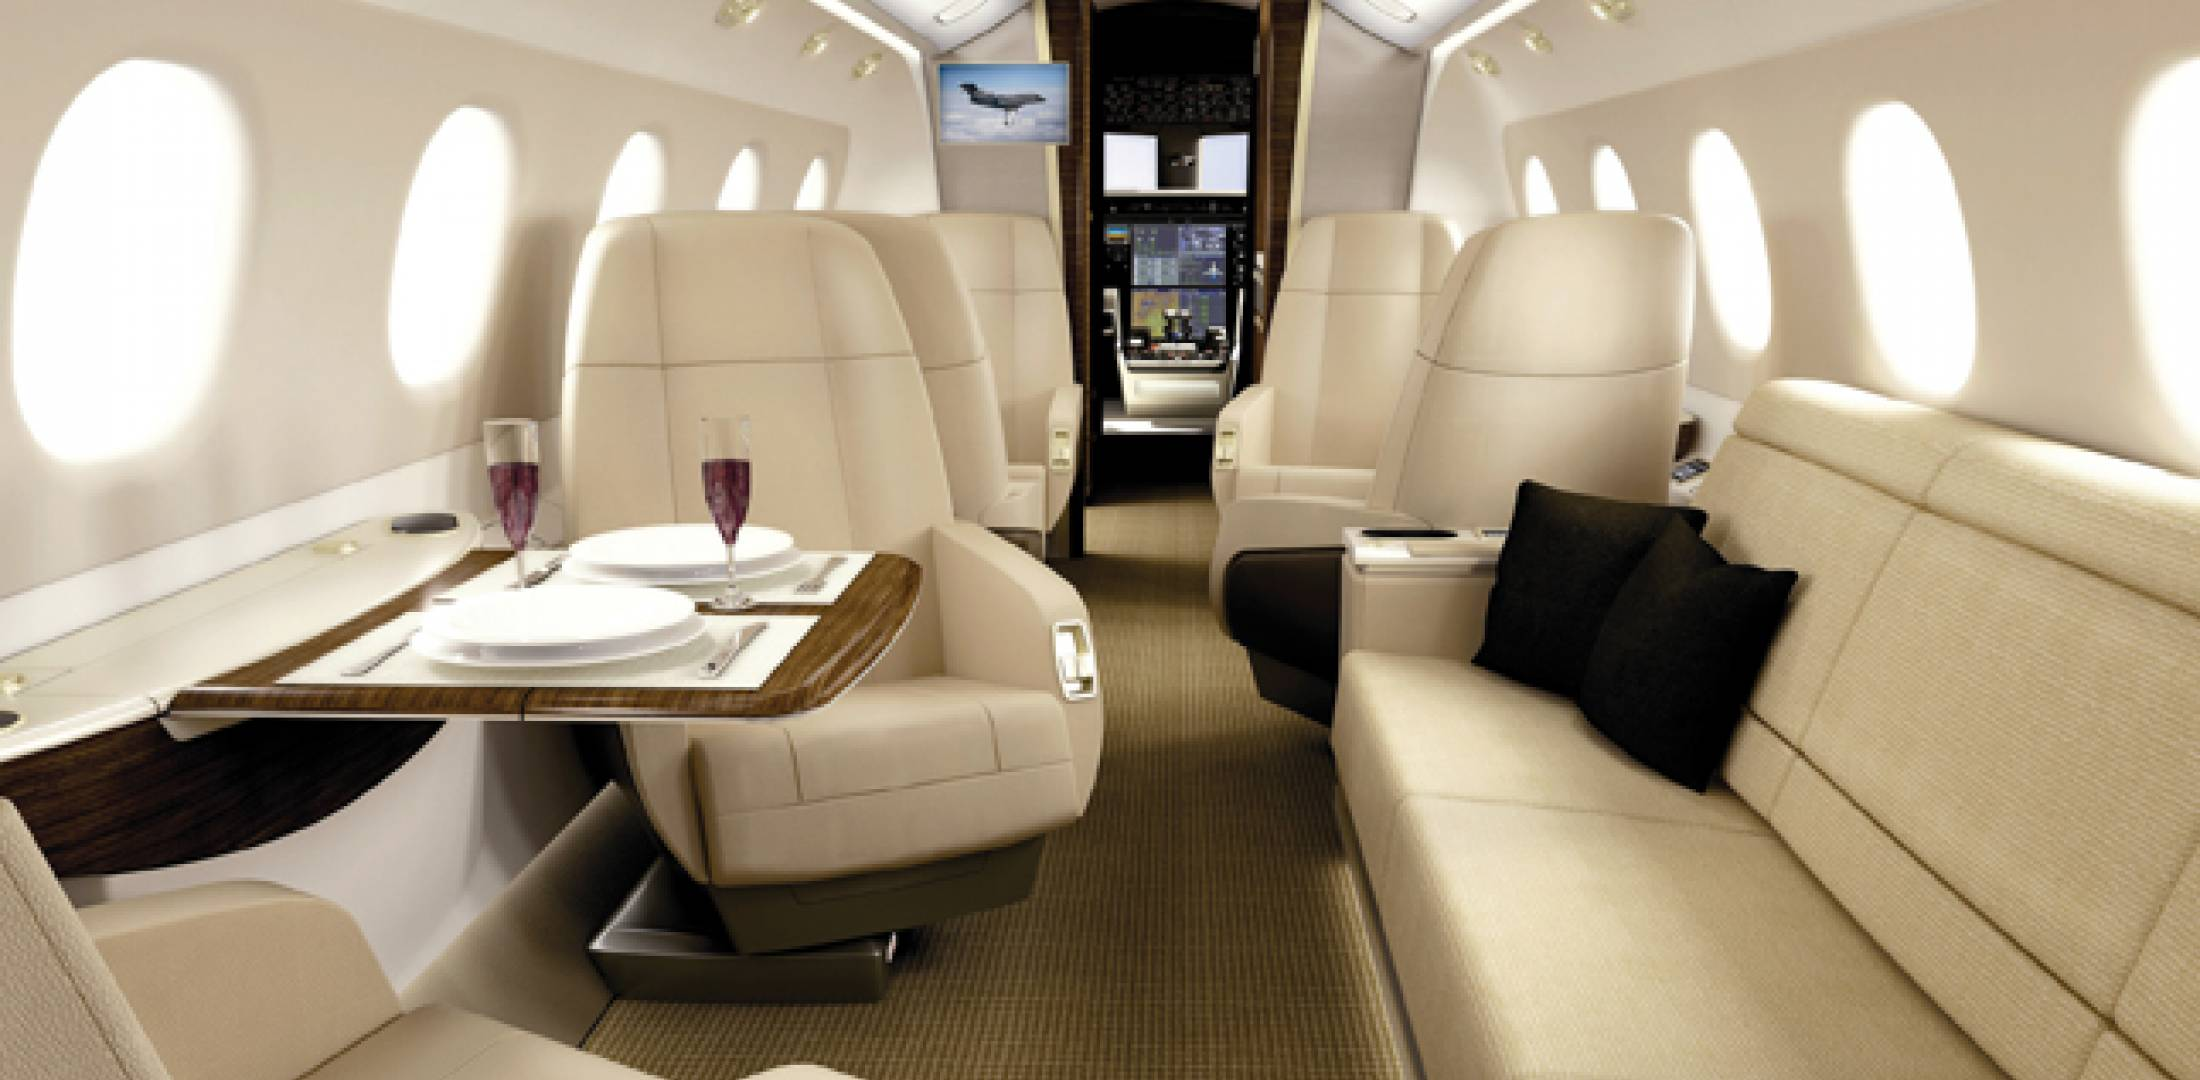 """In designing the Legacy 500 interior, Embraer had several focus groups come in and spend an entire night in the cabin mockup, """"sleeping, eating, using the lavatory,"""" all to see if the issues they had noted had been addressed properly."""